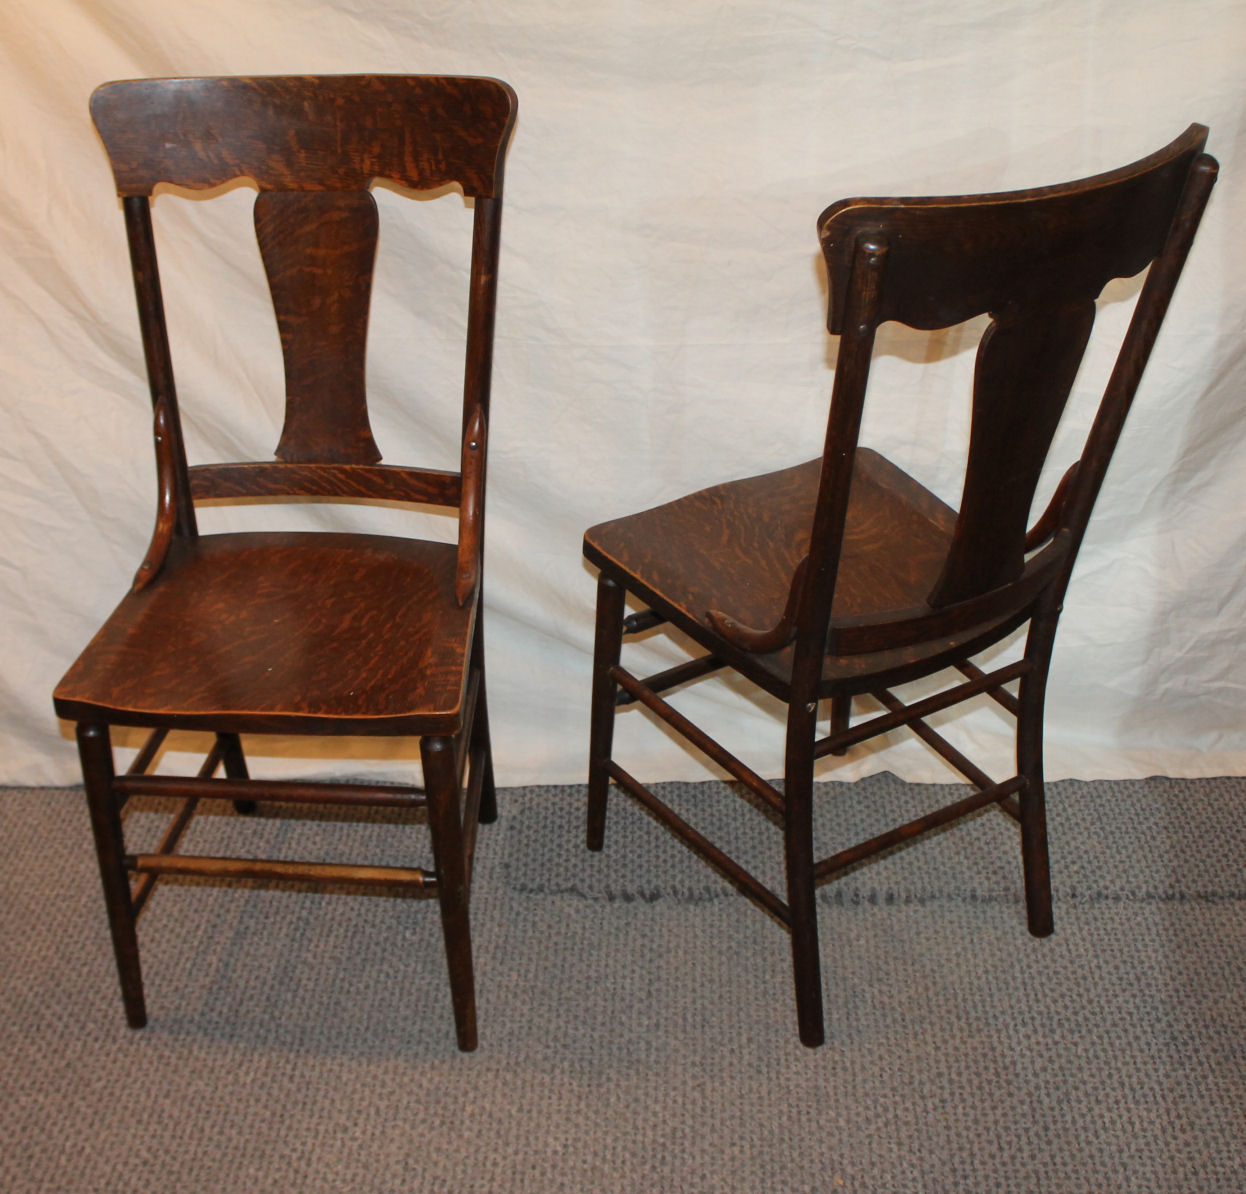 Five Chairs Bargain John 39s Antiques Blog Archive Set Of Five Chairs